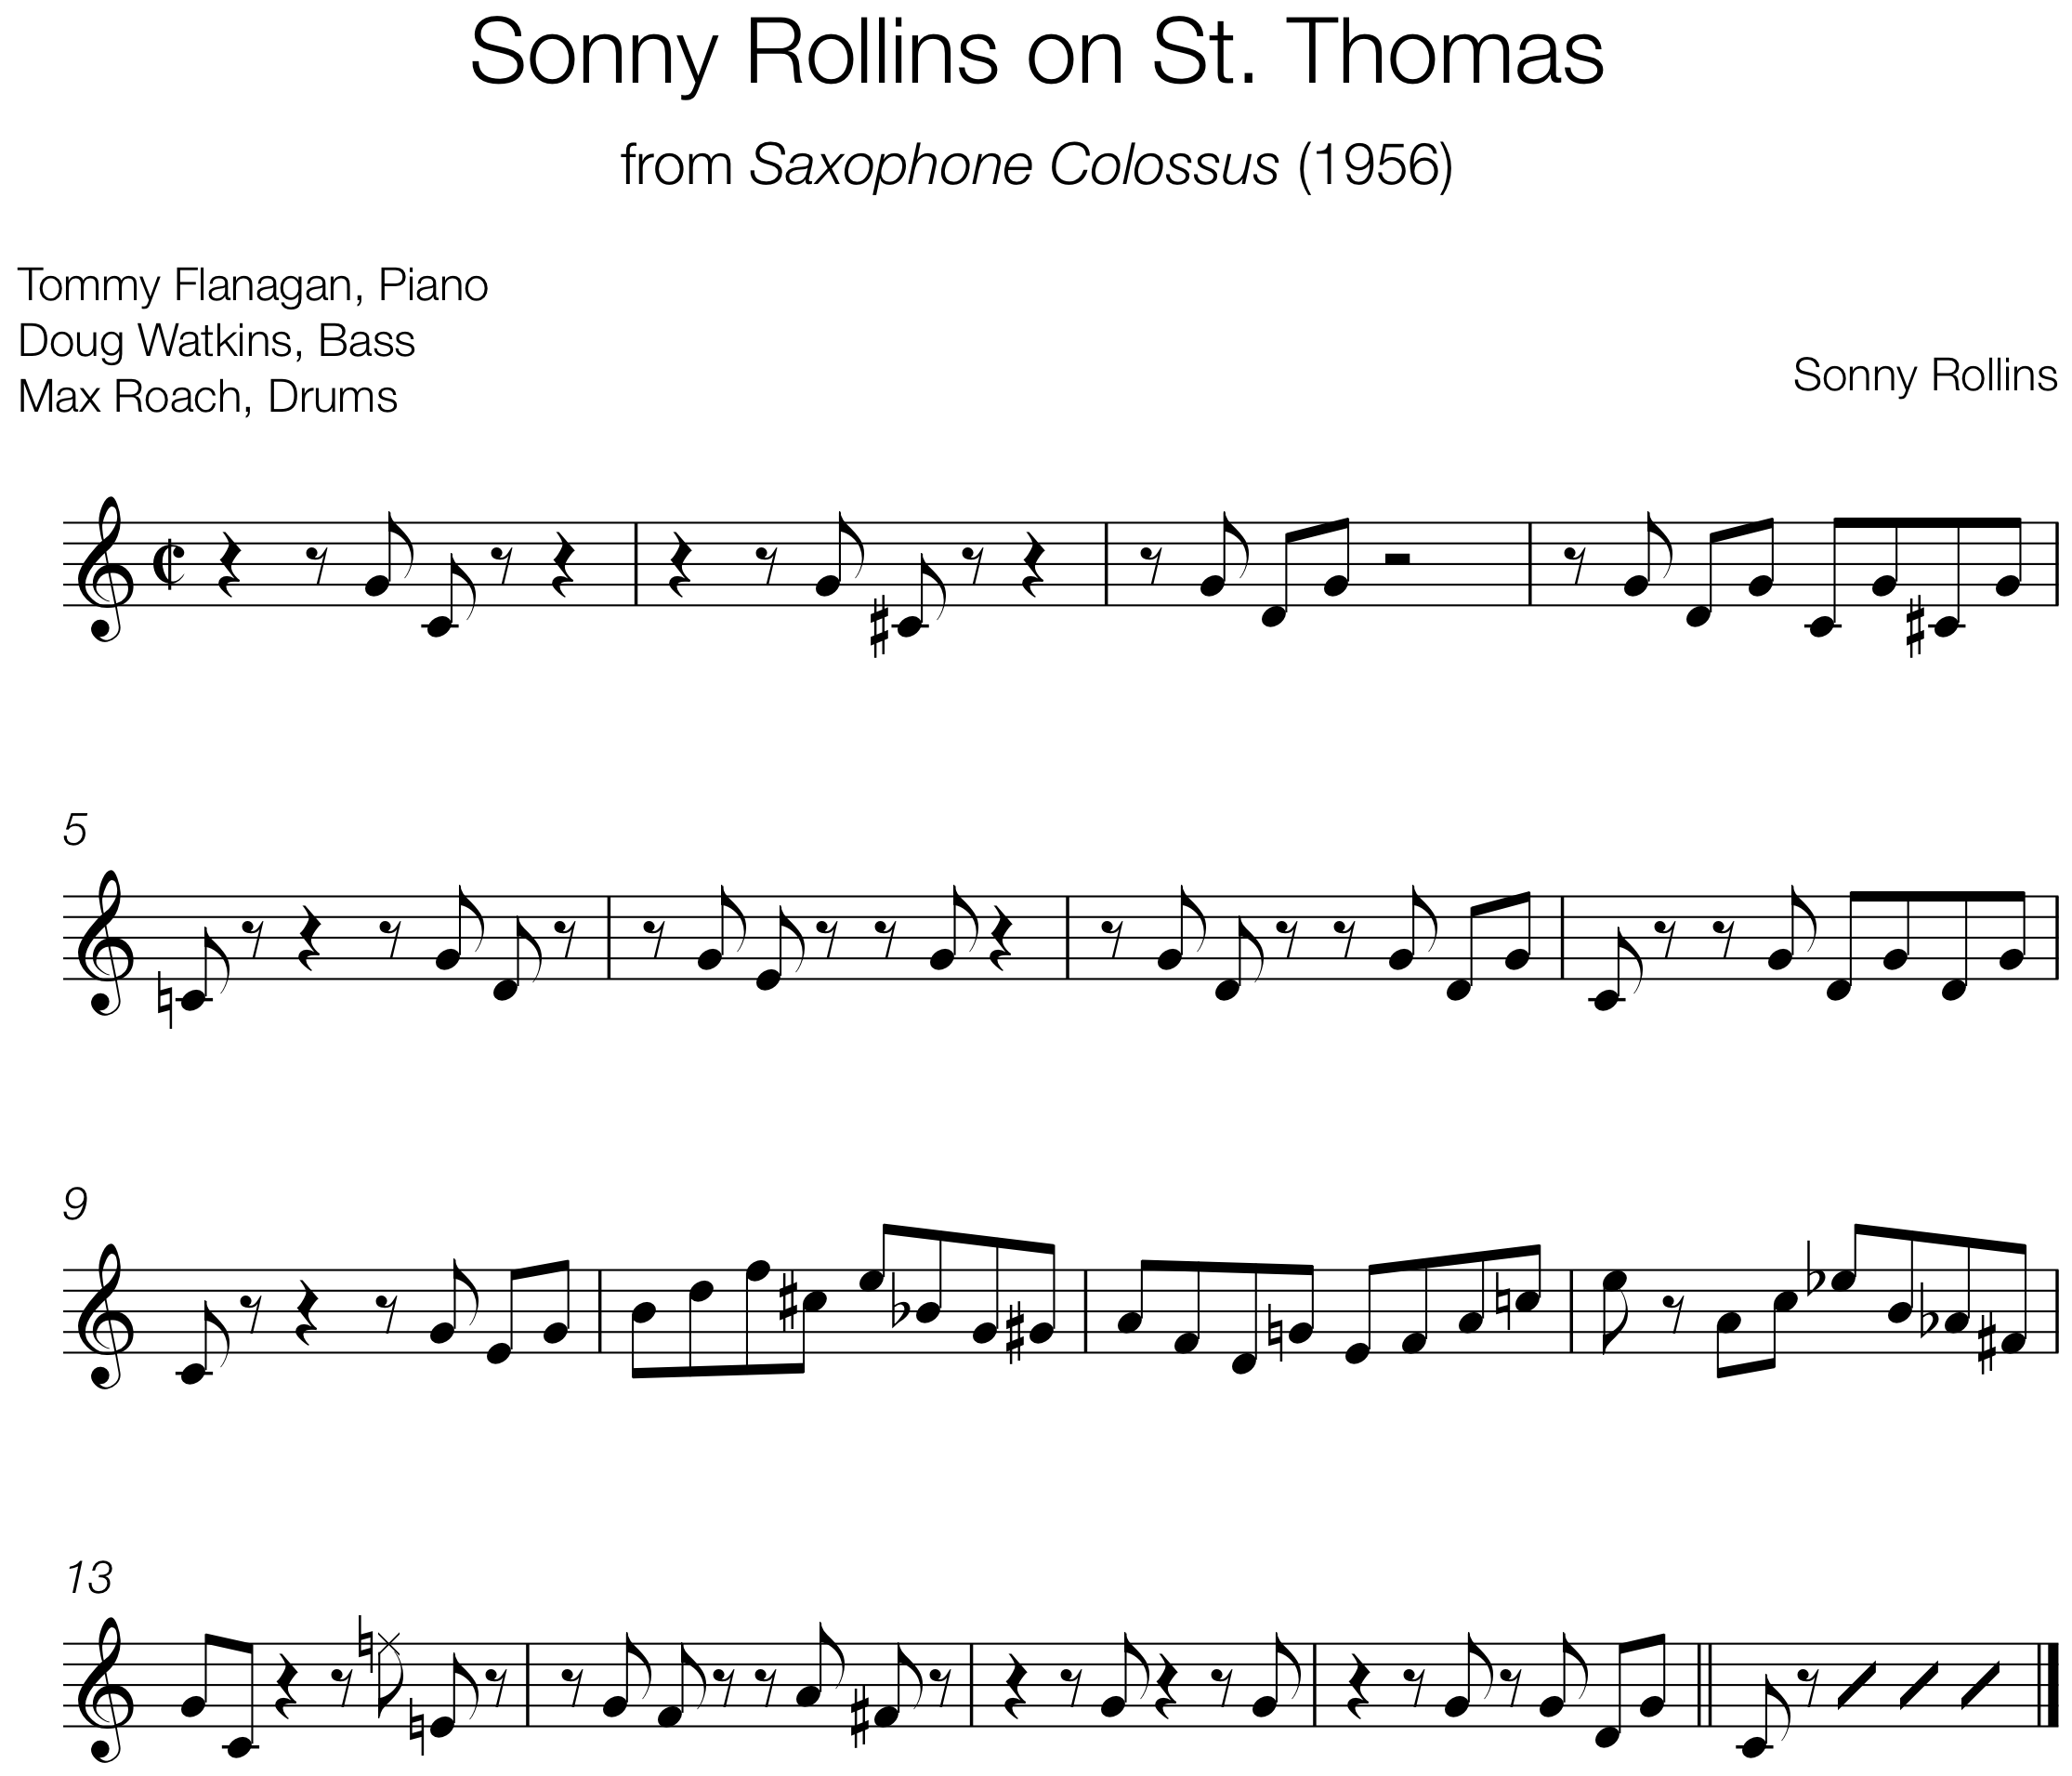 Sonny Rollins on St Thomas